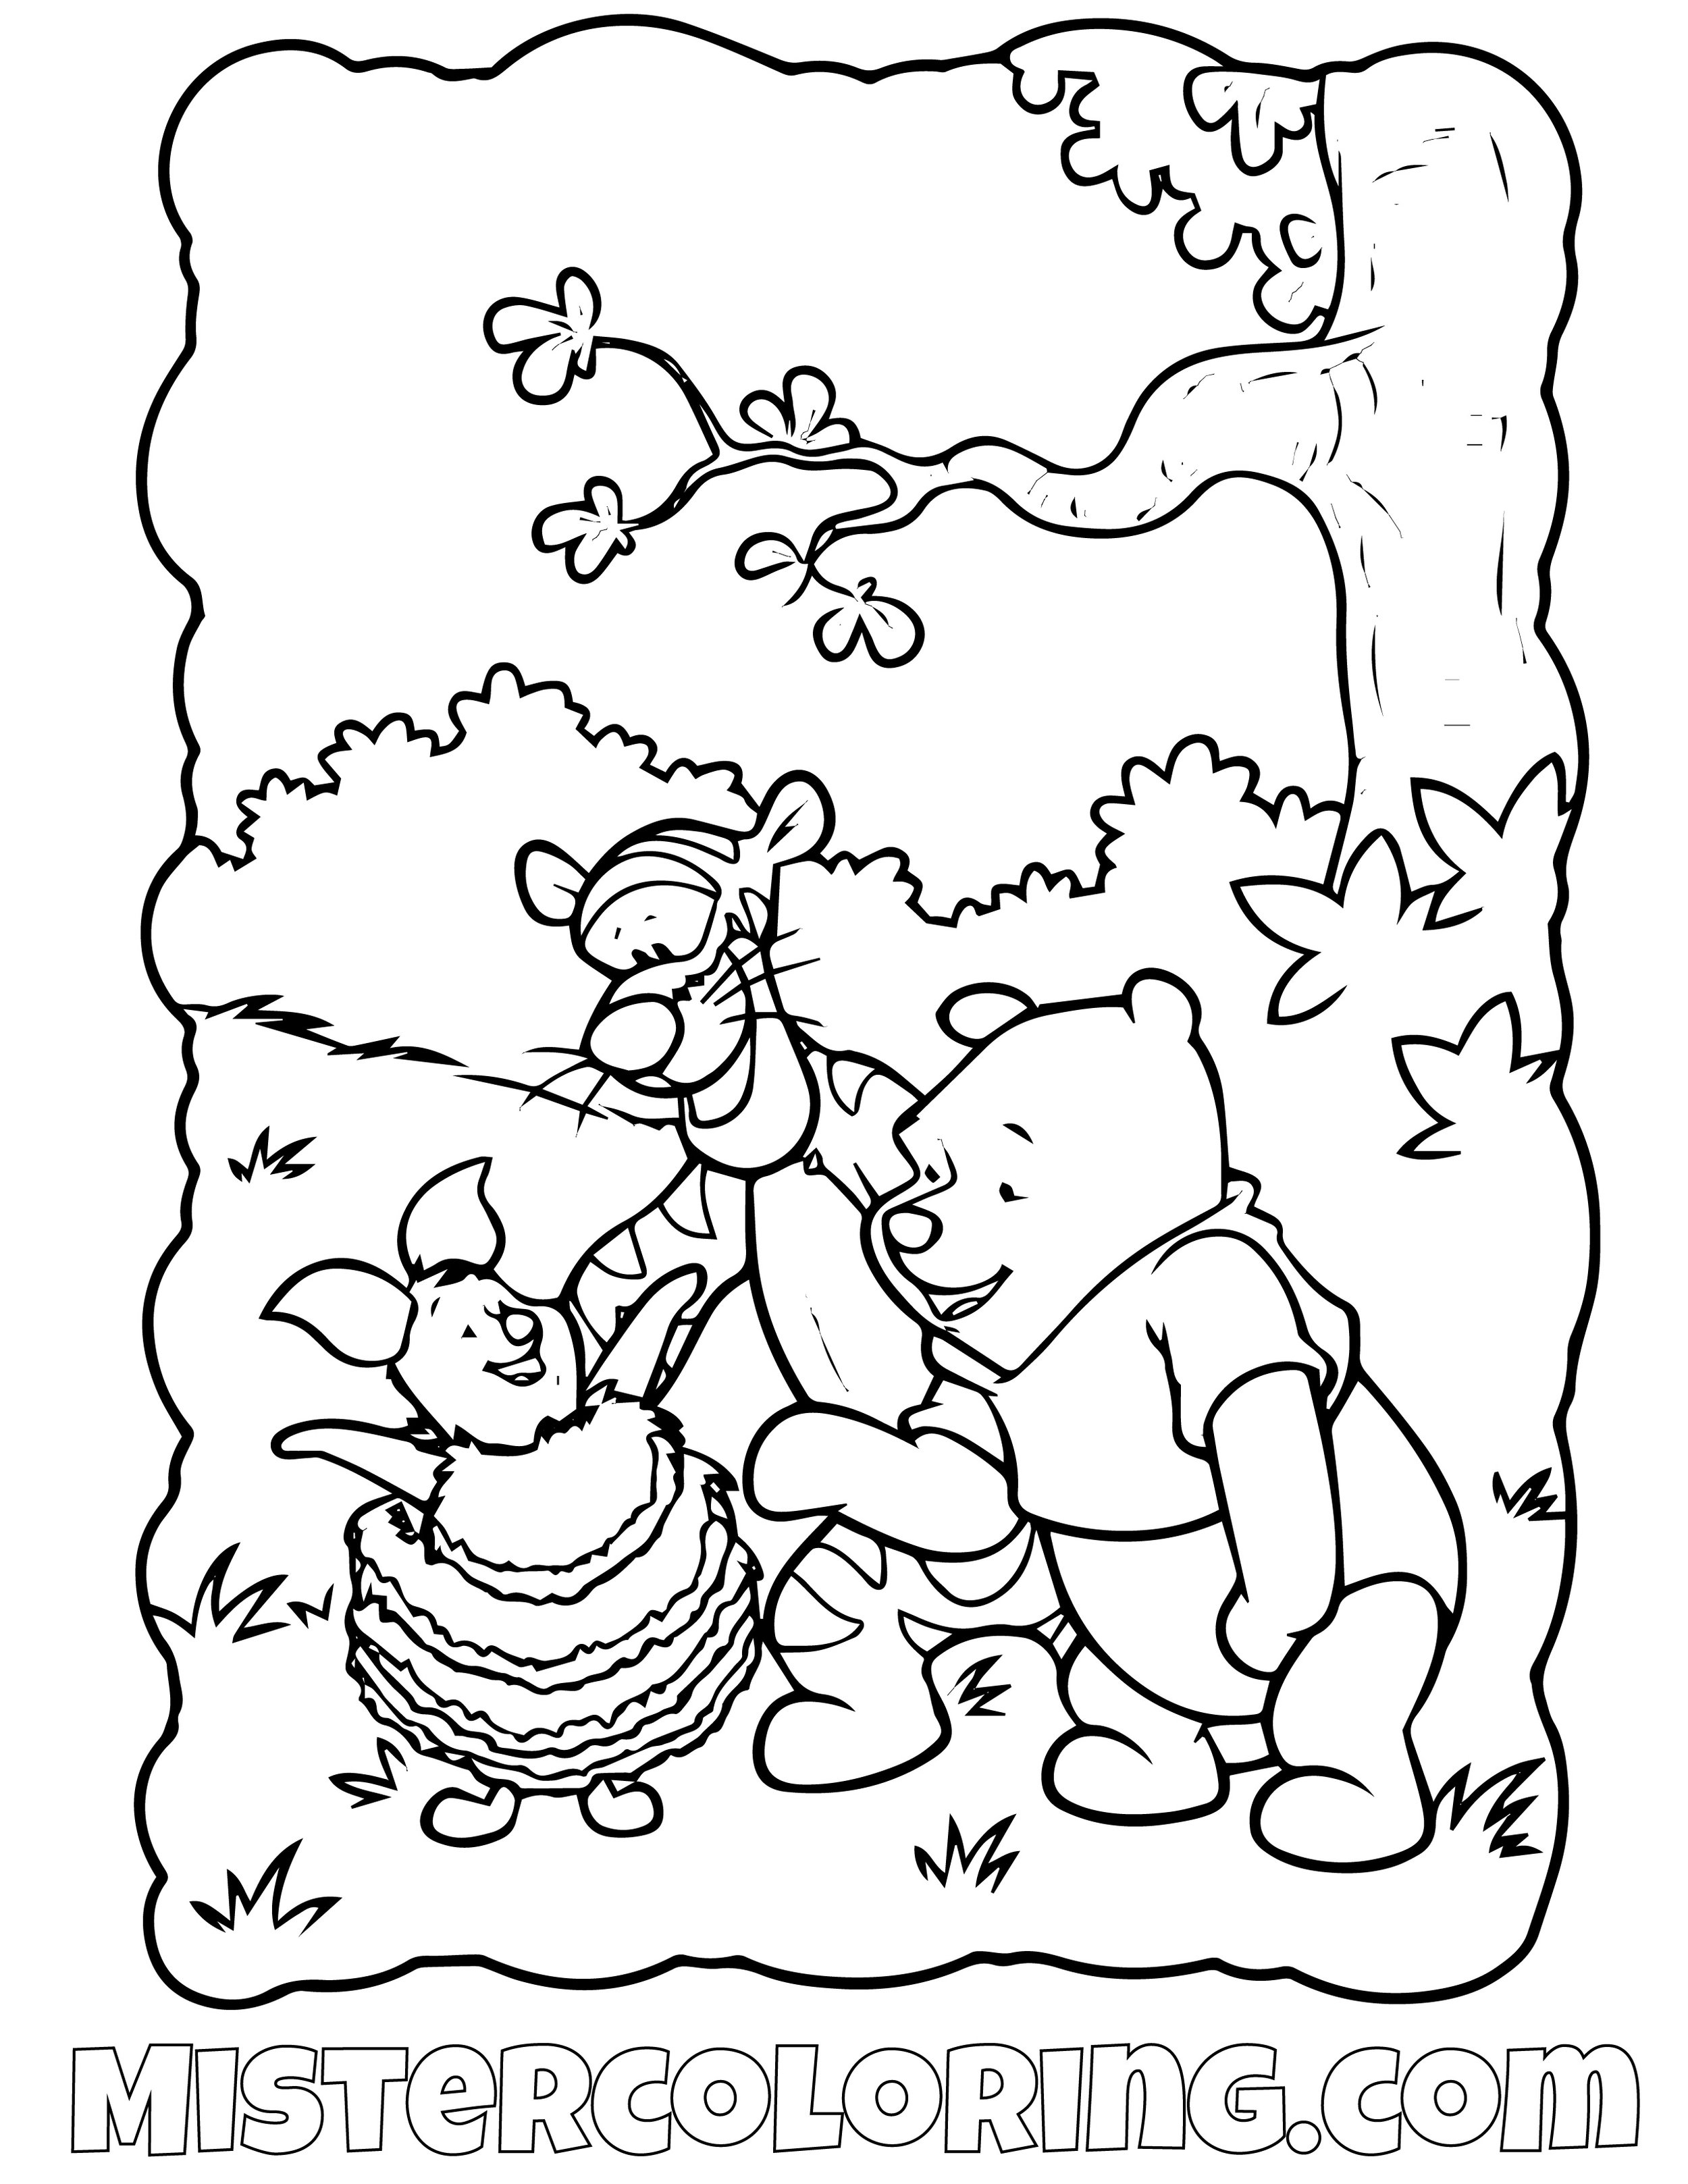 Winnie The Pooh 6 Coloring Page